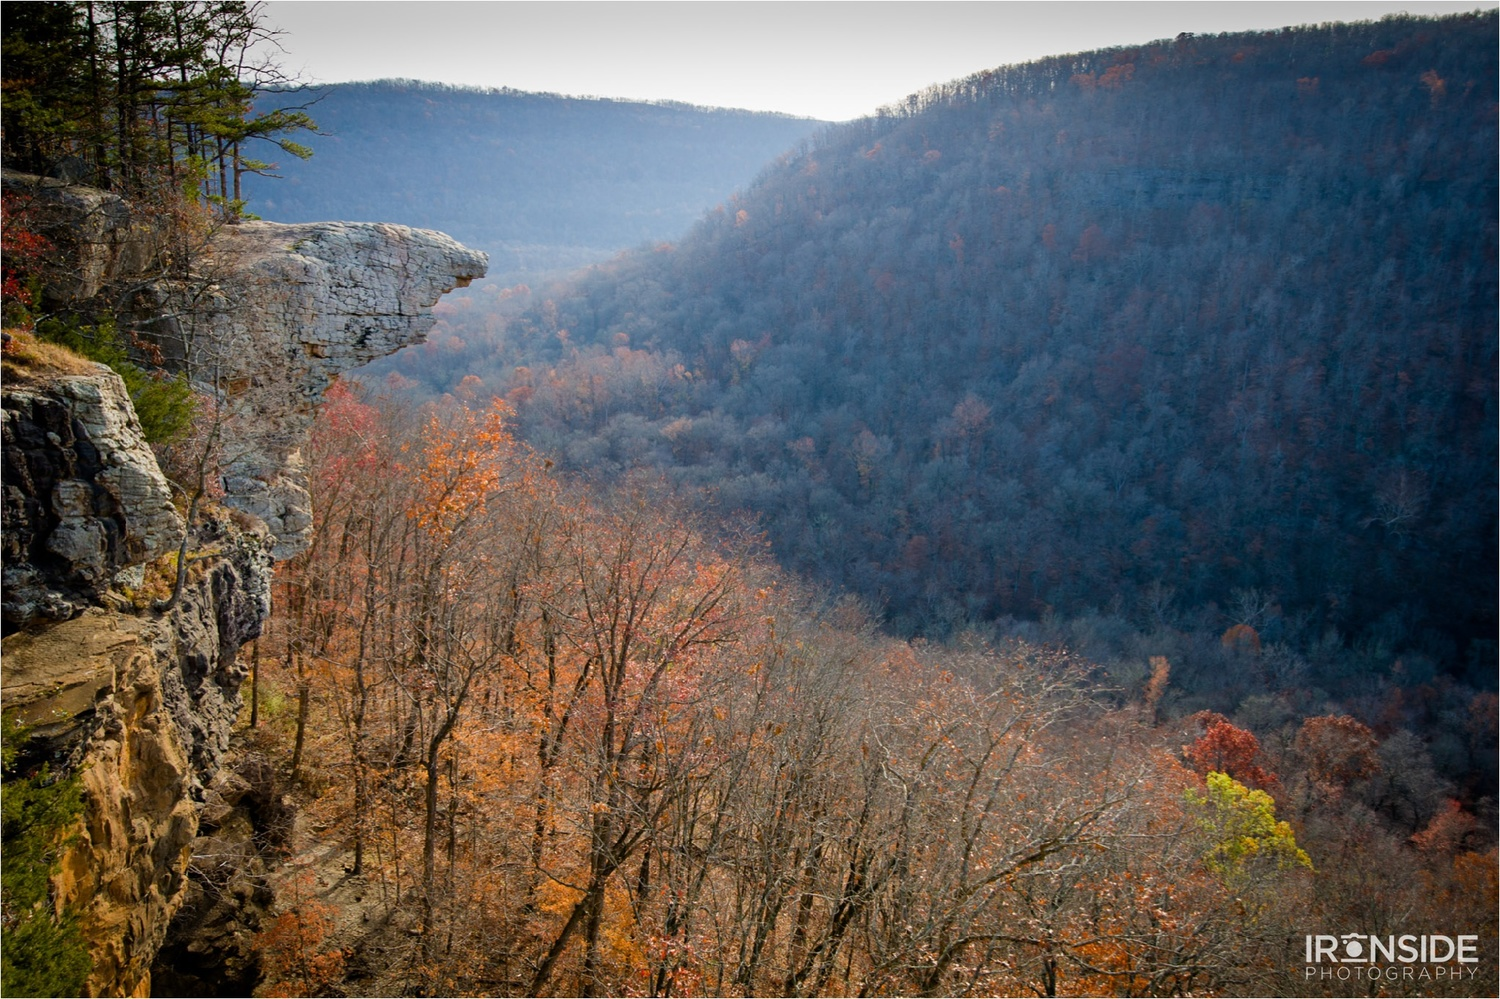 Even just location scouting can take you to some magical places. Hawksbill Crag, Ozark National Forest, Arkansas, 2012. Photo by Stephen Ironside.